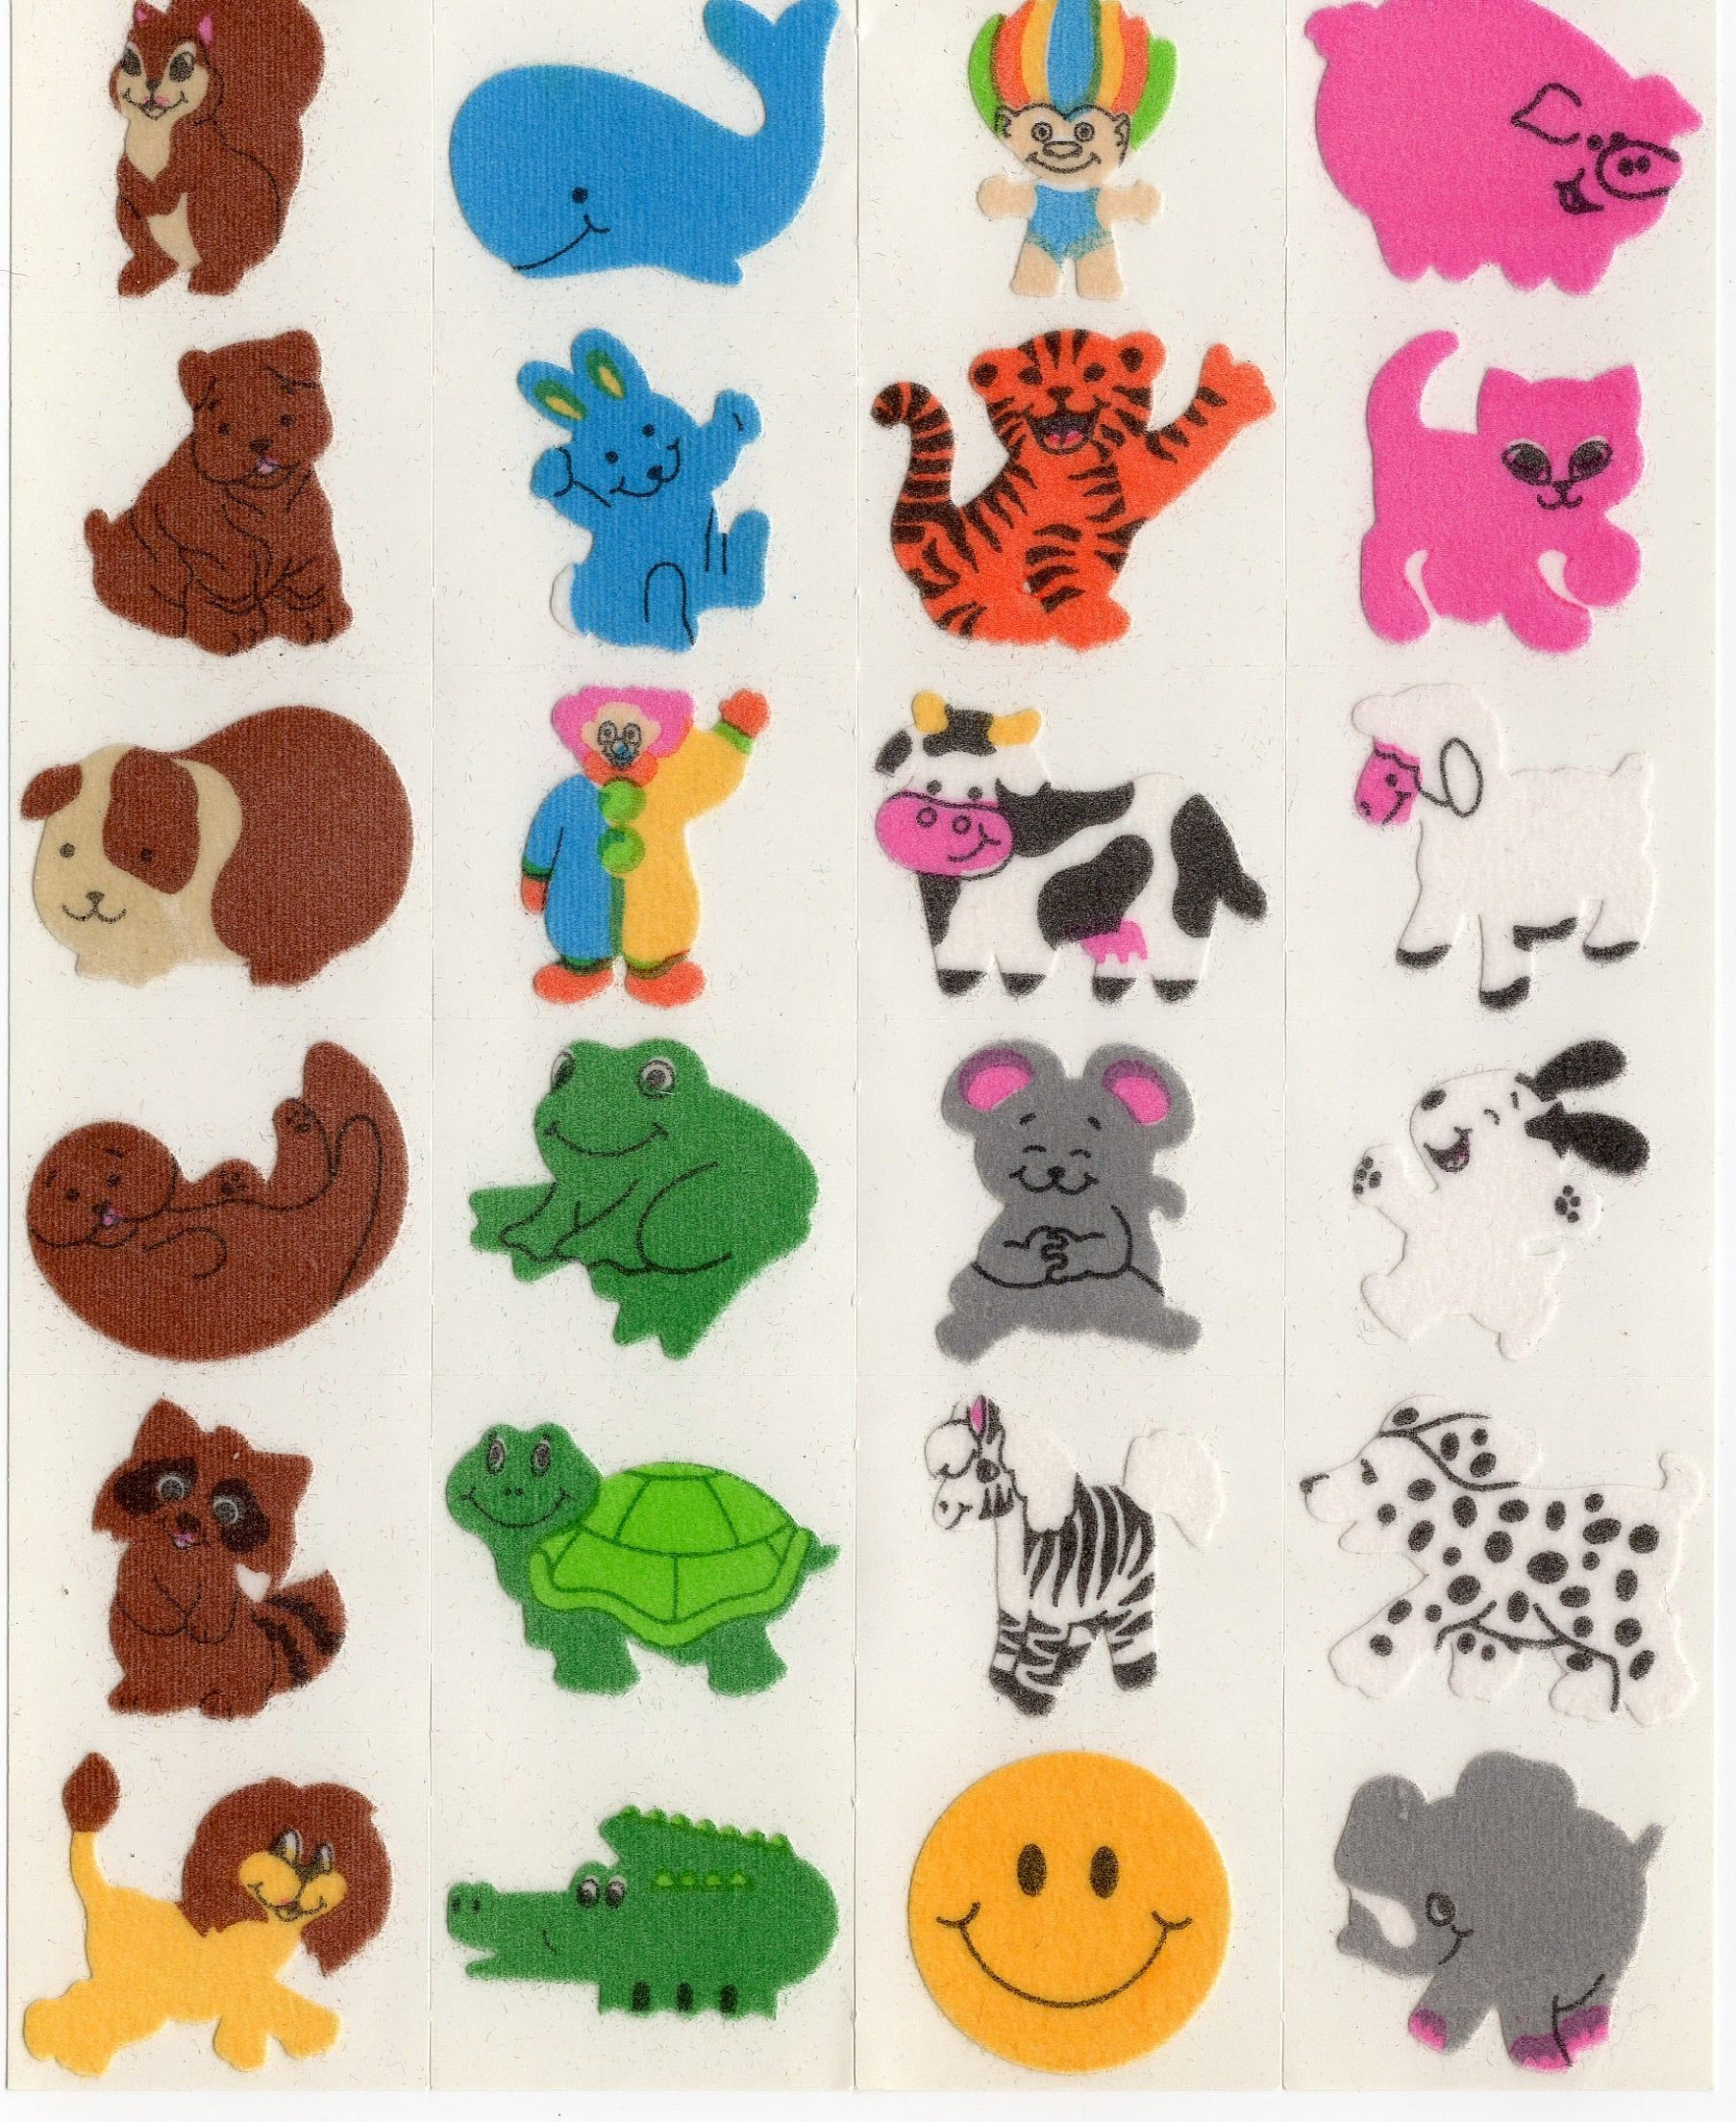 SandyLion sticker sección 80er 90er Fuzzy esqueleto sticker album cromos